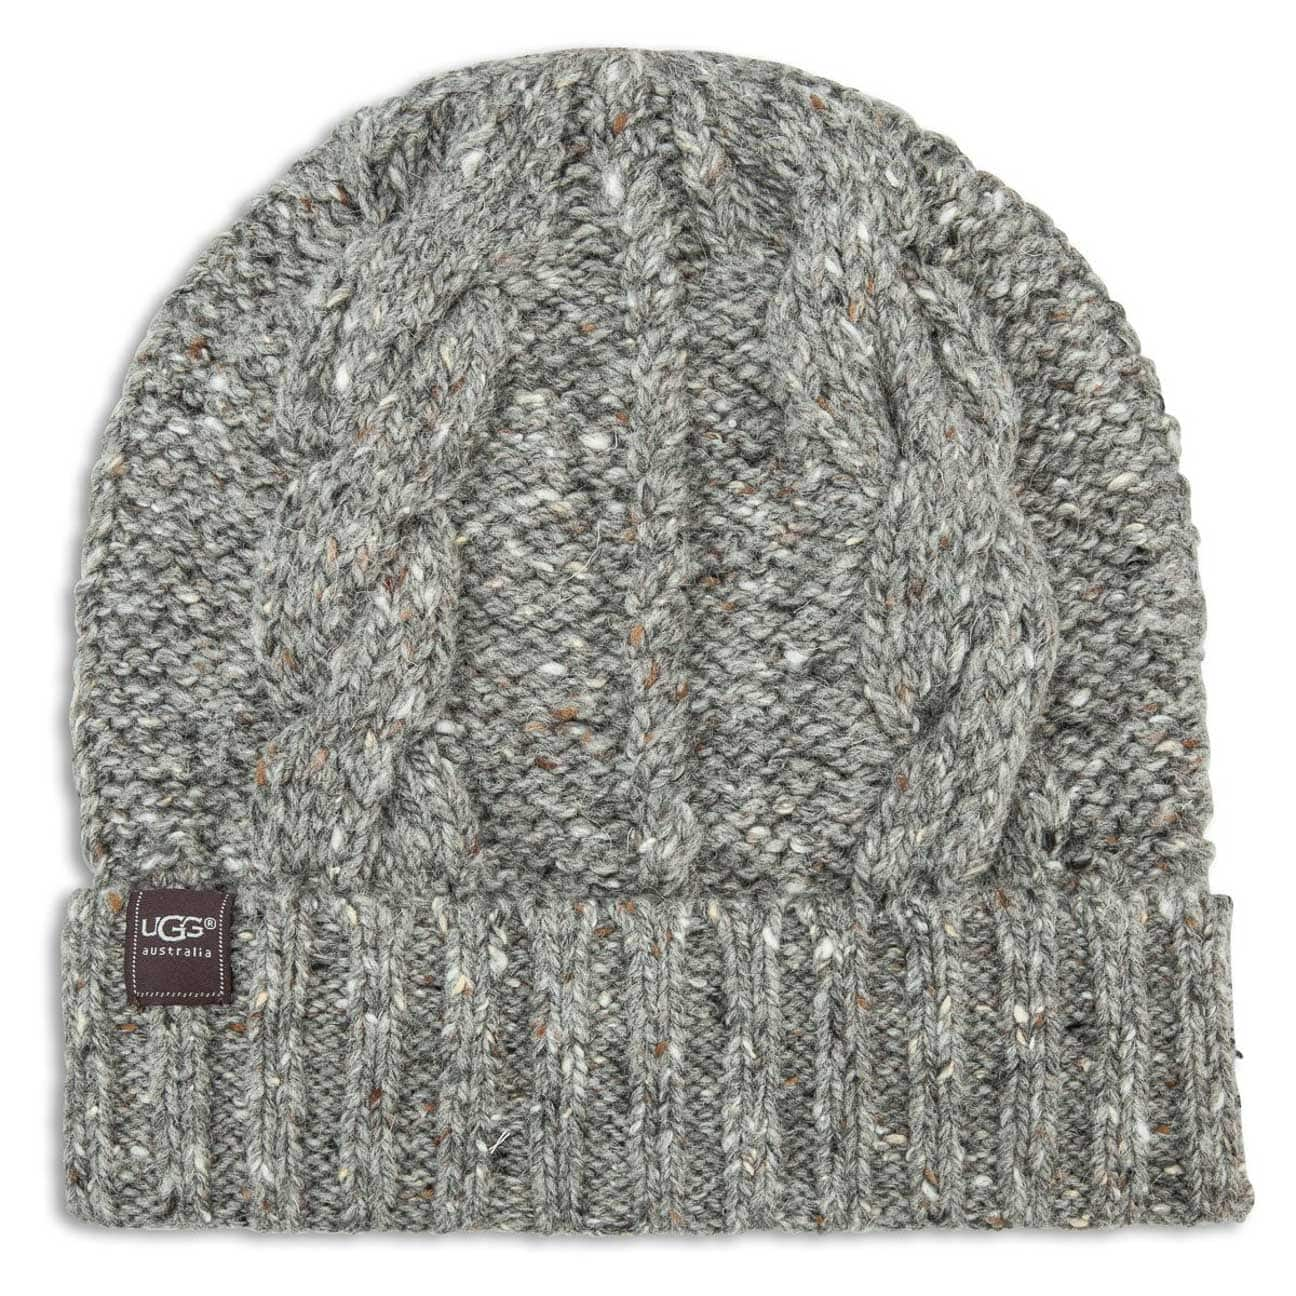 Anke Cable Knit Hat by UGG - grey 1 ... ce8c9de5028